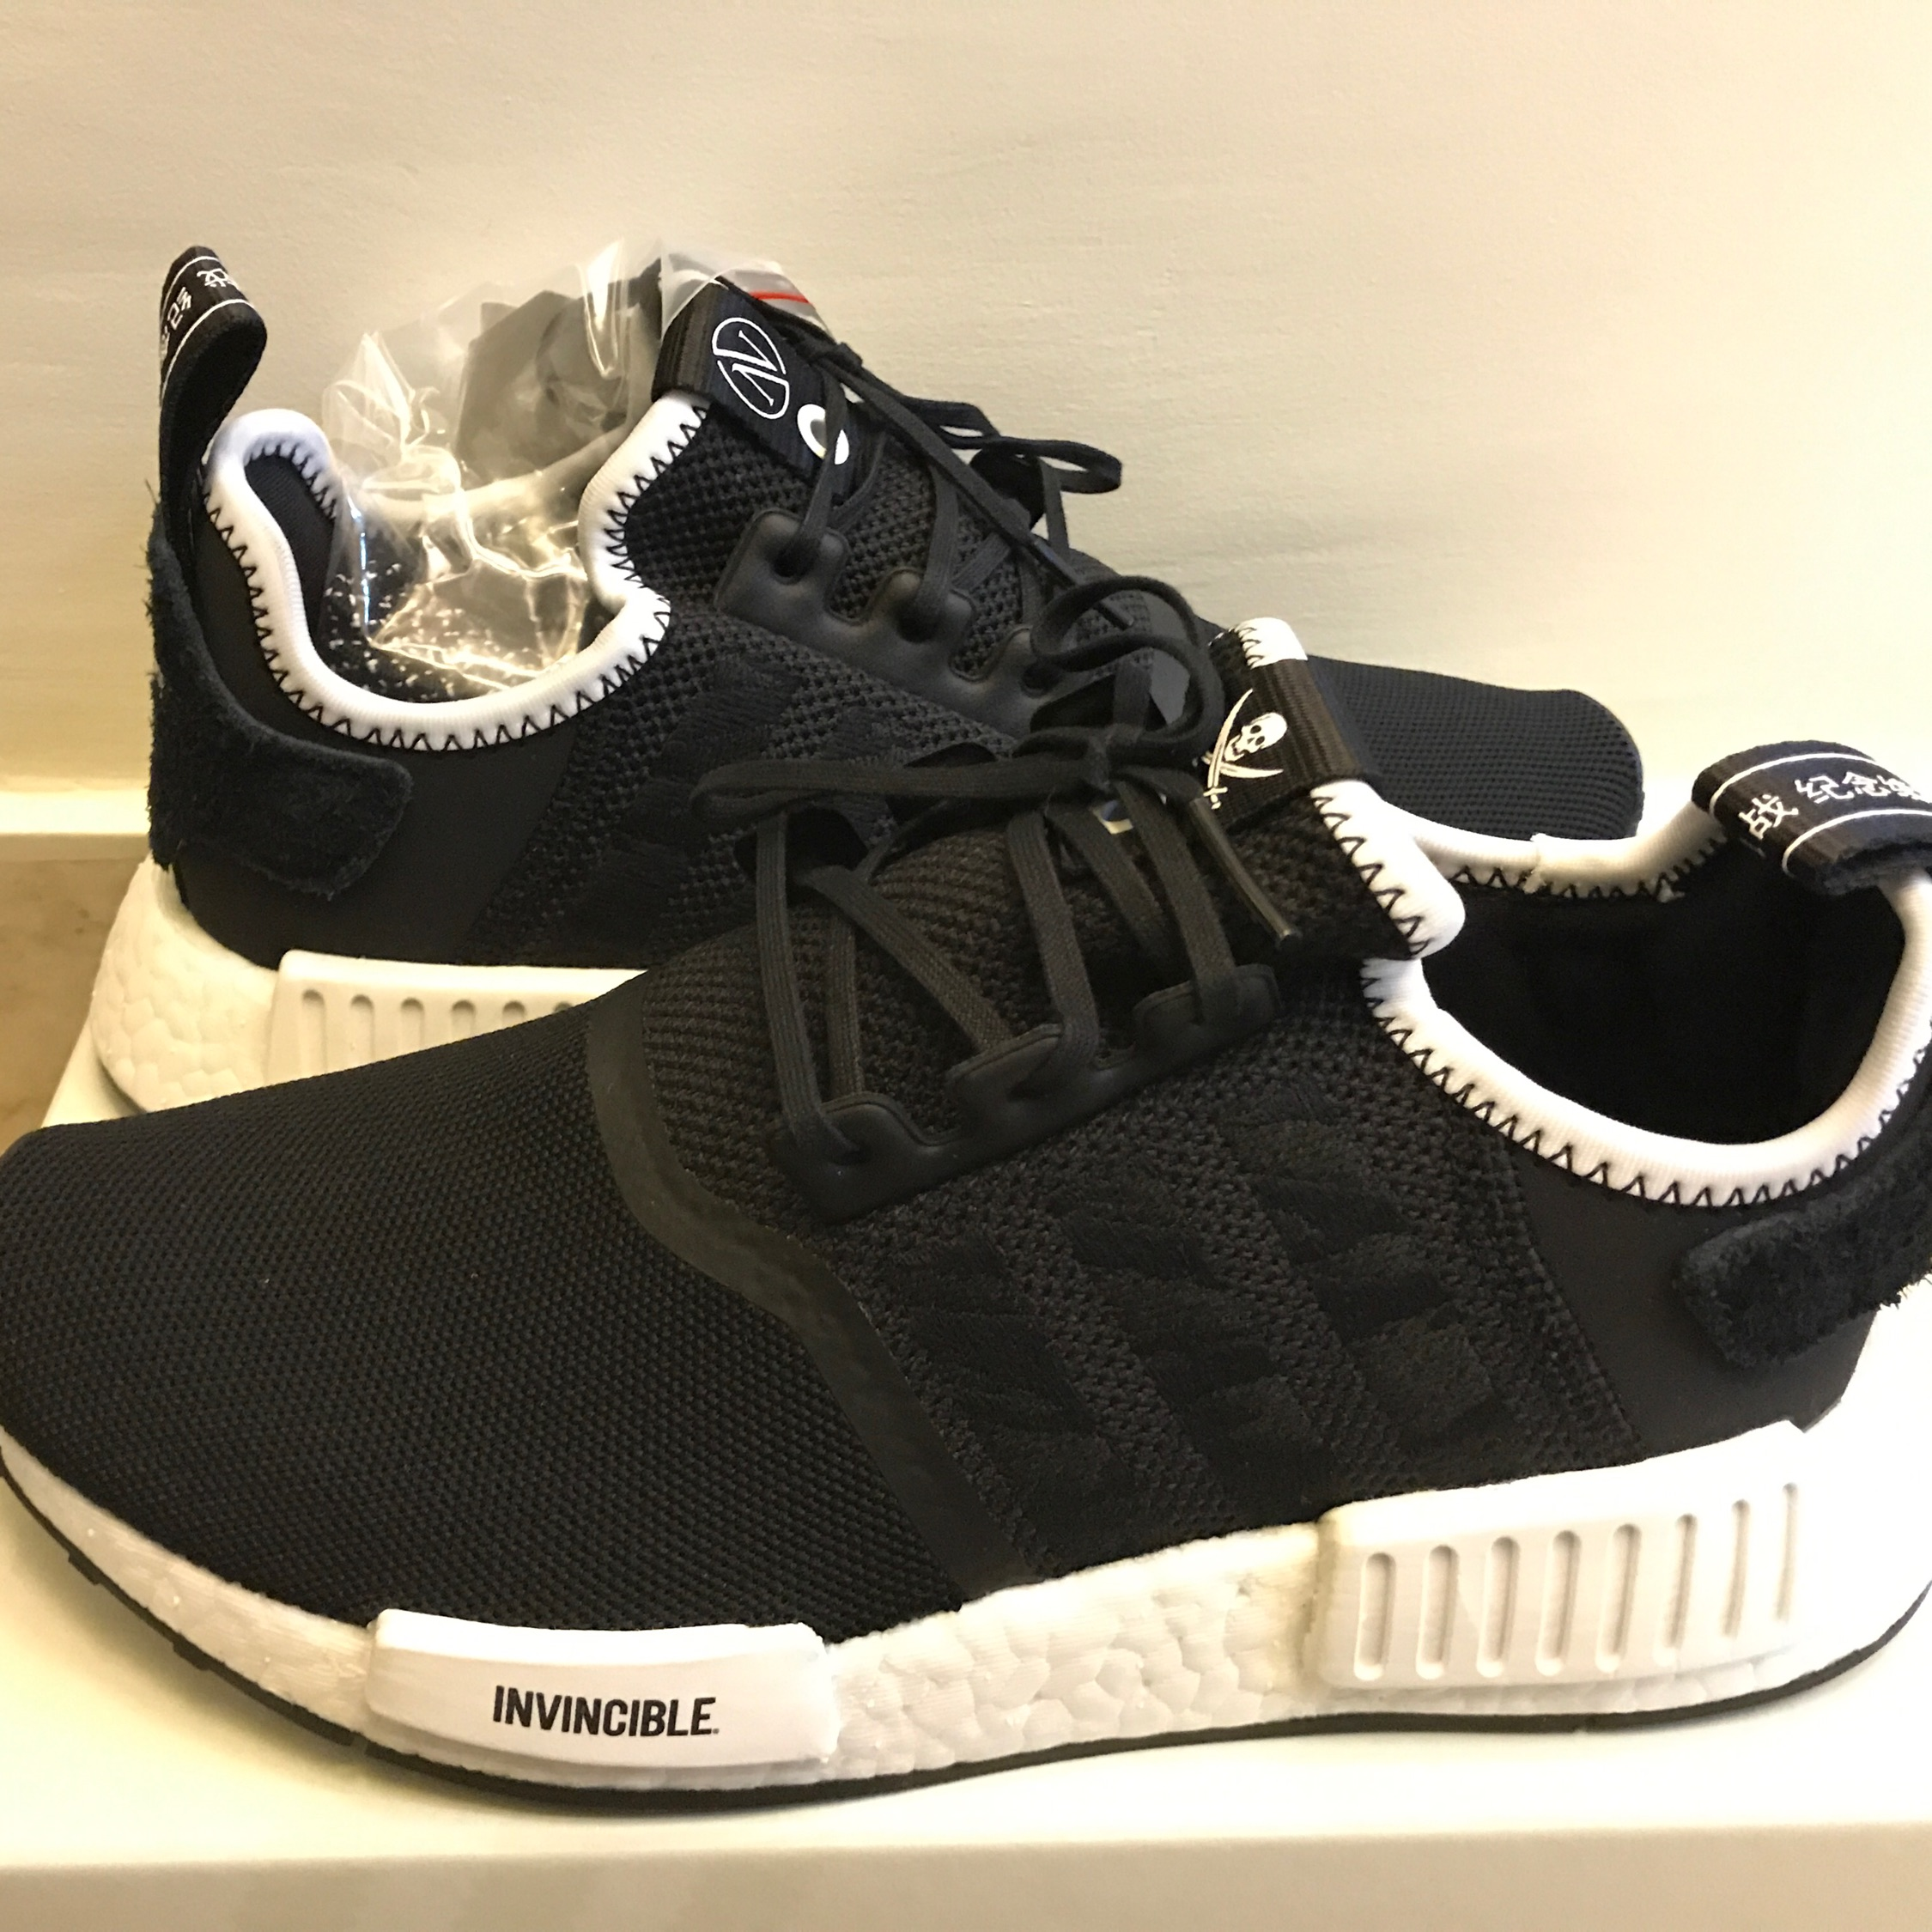 newest 8ab03 ee9a9 Adidas Invincible X Neighborhood Nmd R1 Size 5 Us